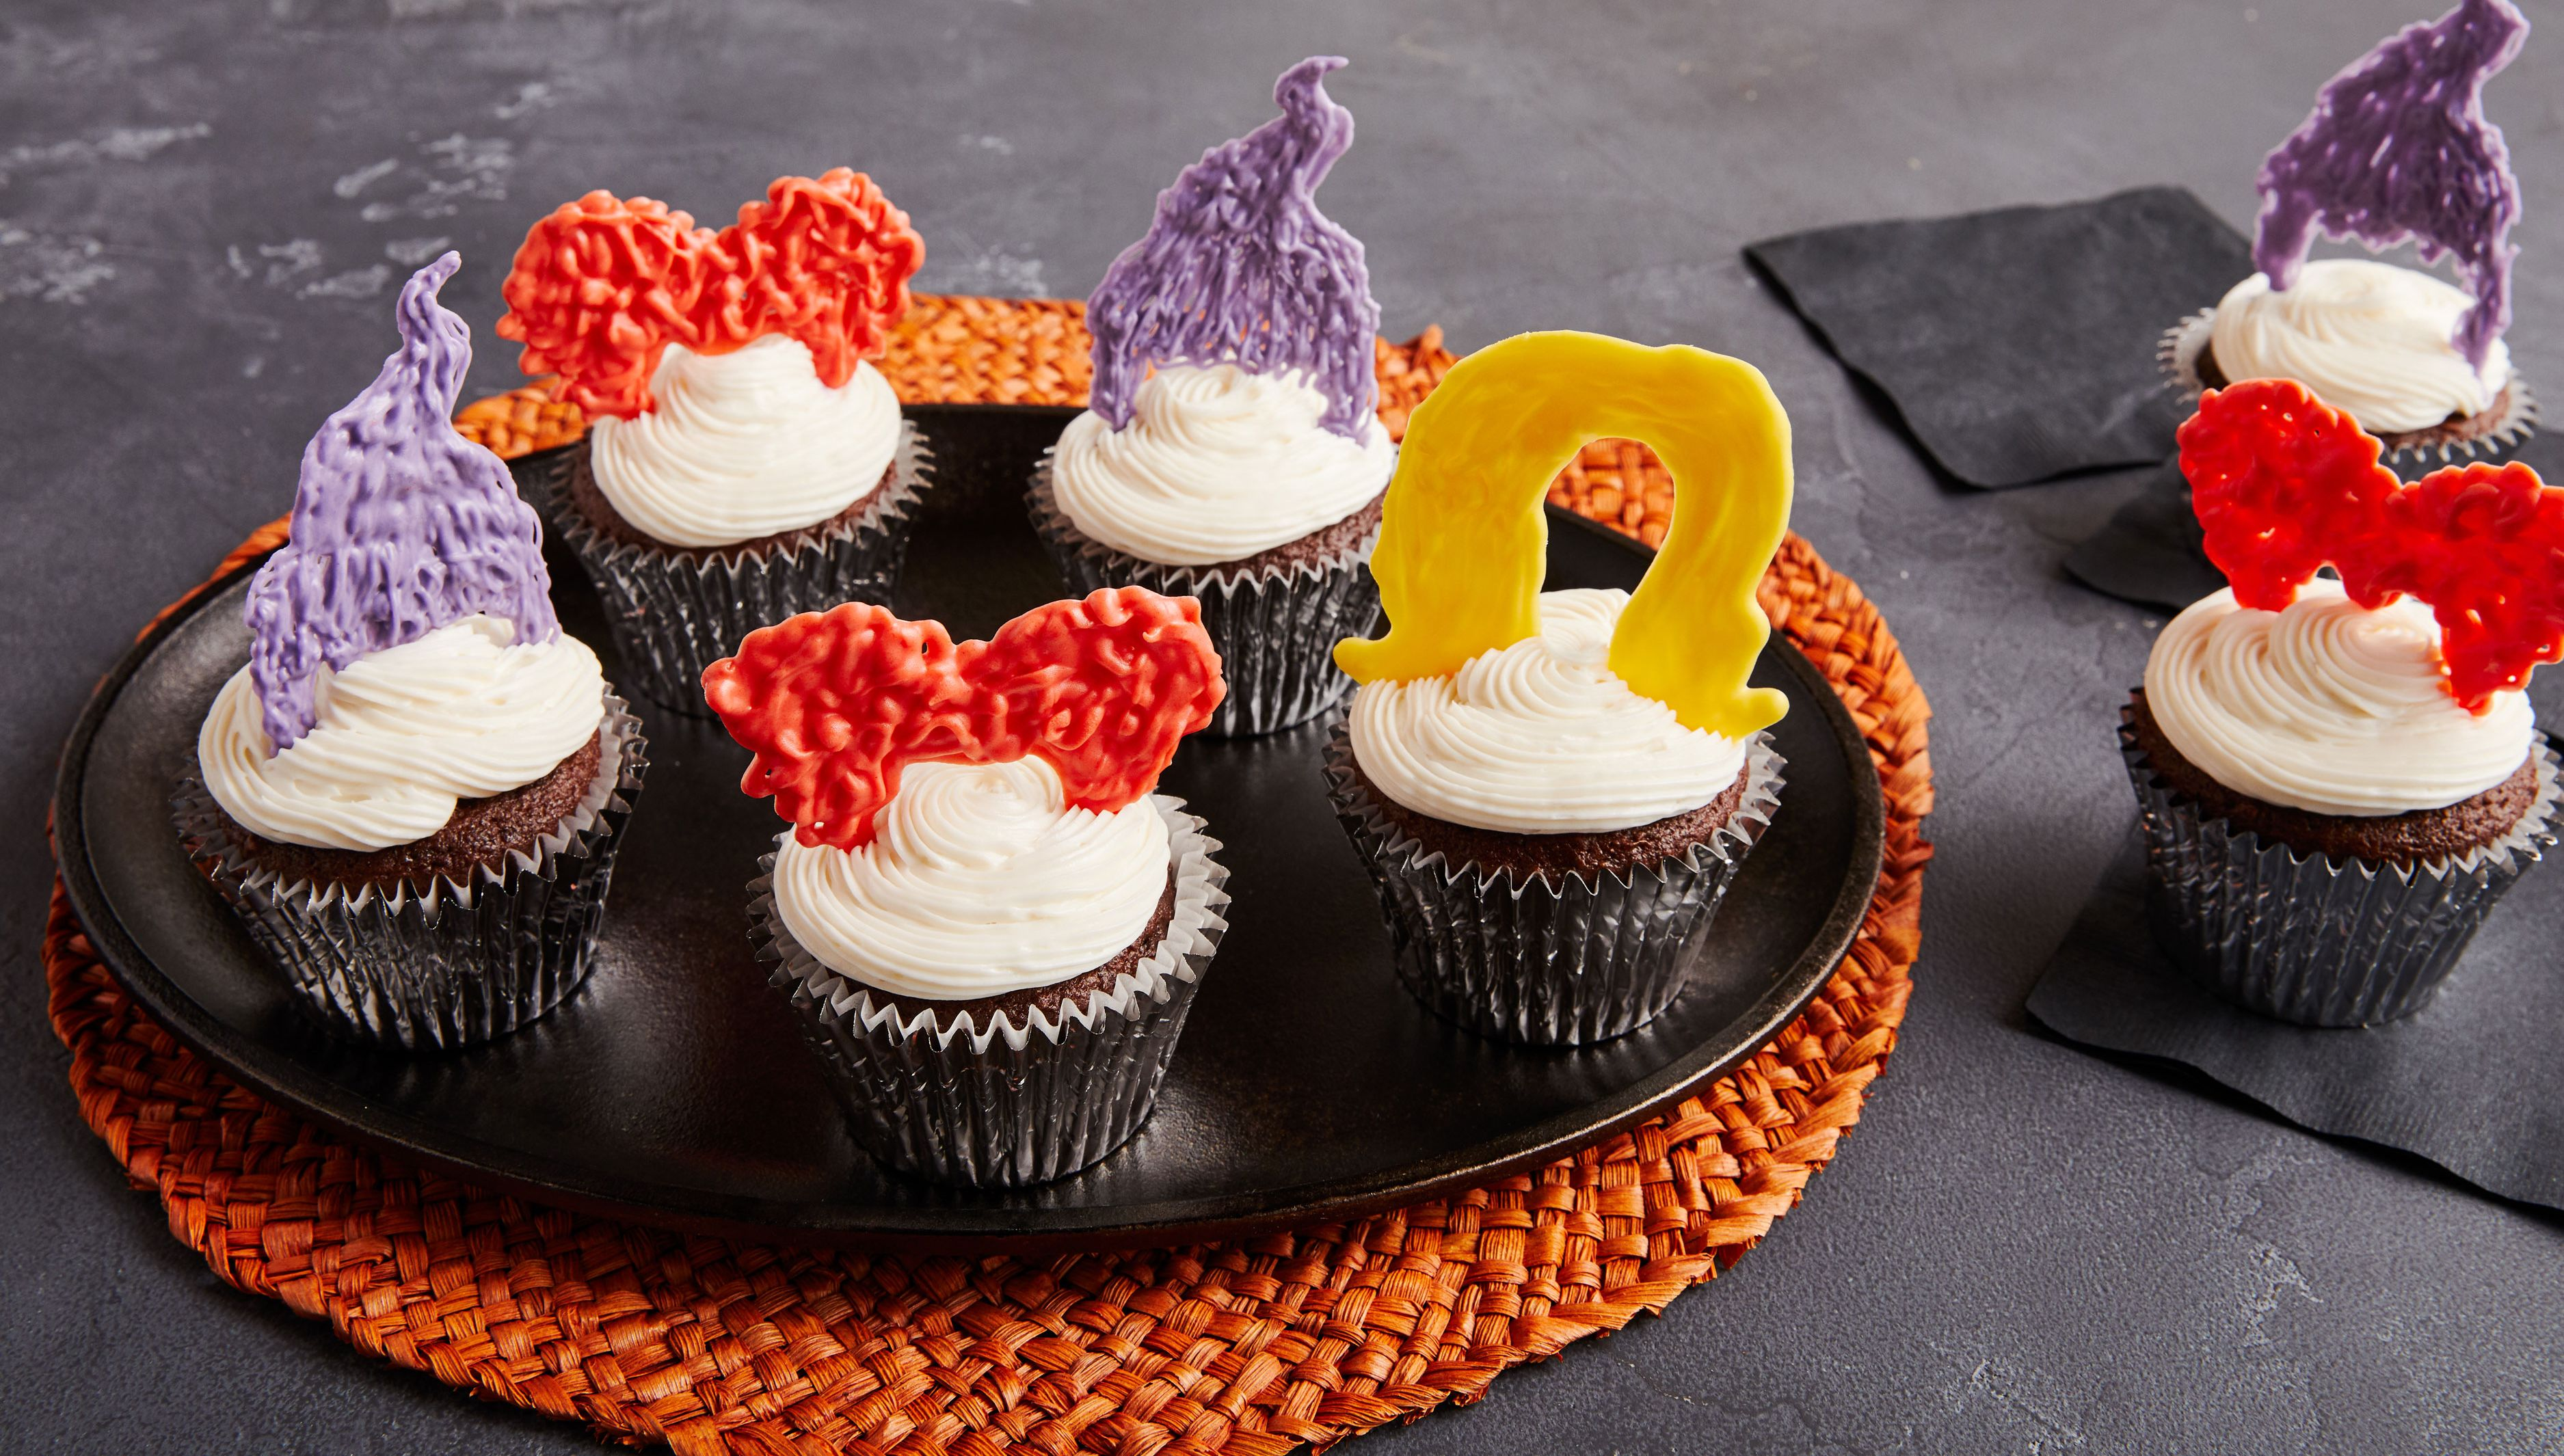 These Sanderson Sister 'Hocus Pocus' Cupcakes Are The Cutest Halloween Treat